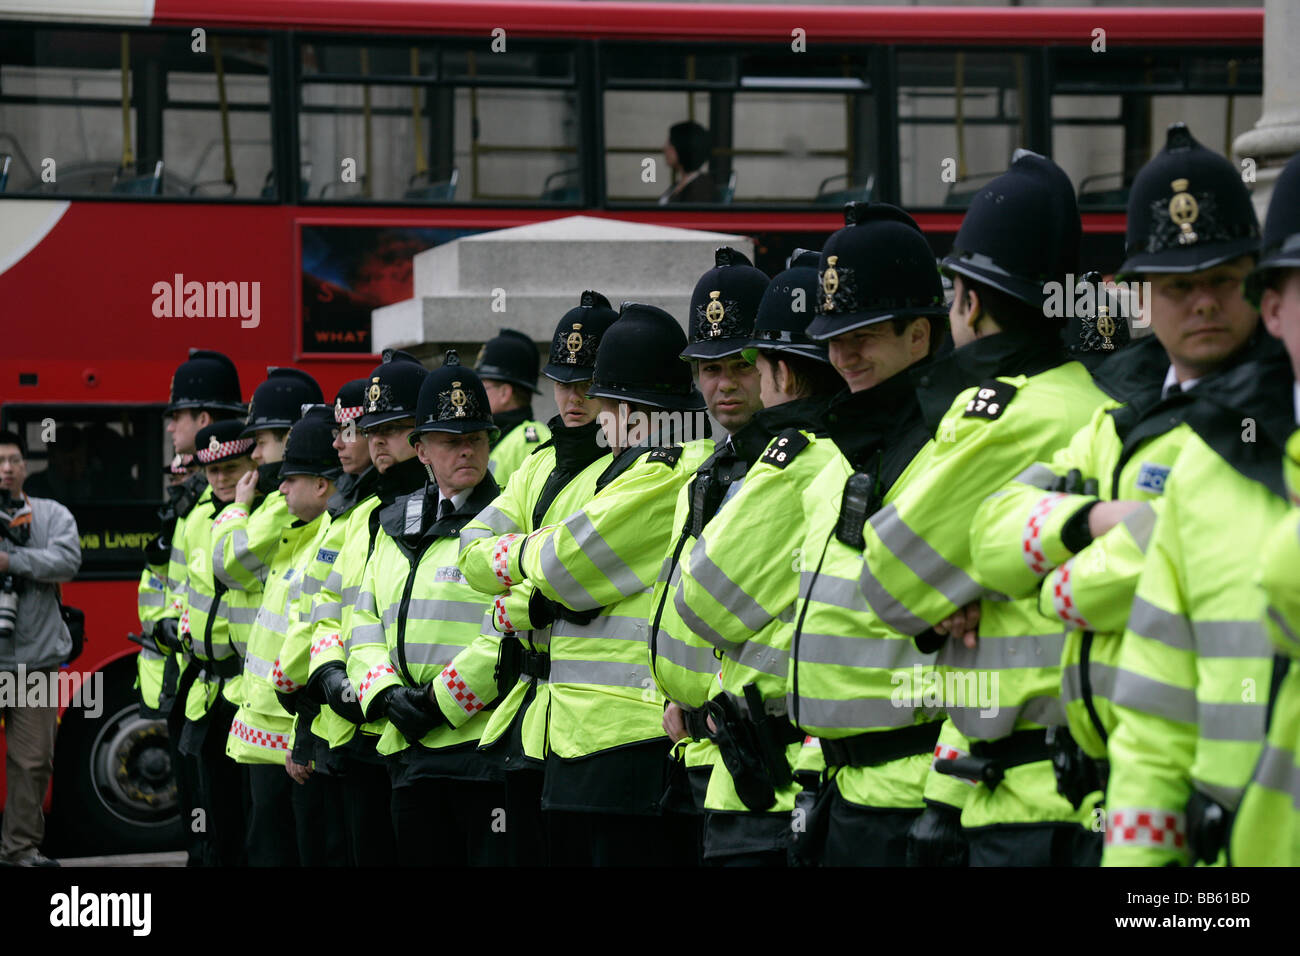 Police line up in preparation for the anti G20 summit demonstrations in front of the Royal Exchange in the City - Stock Image